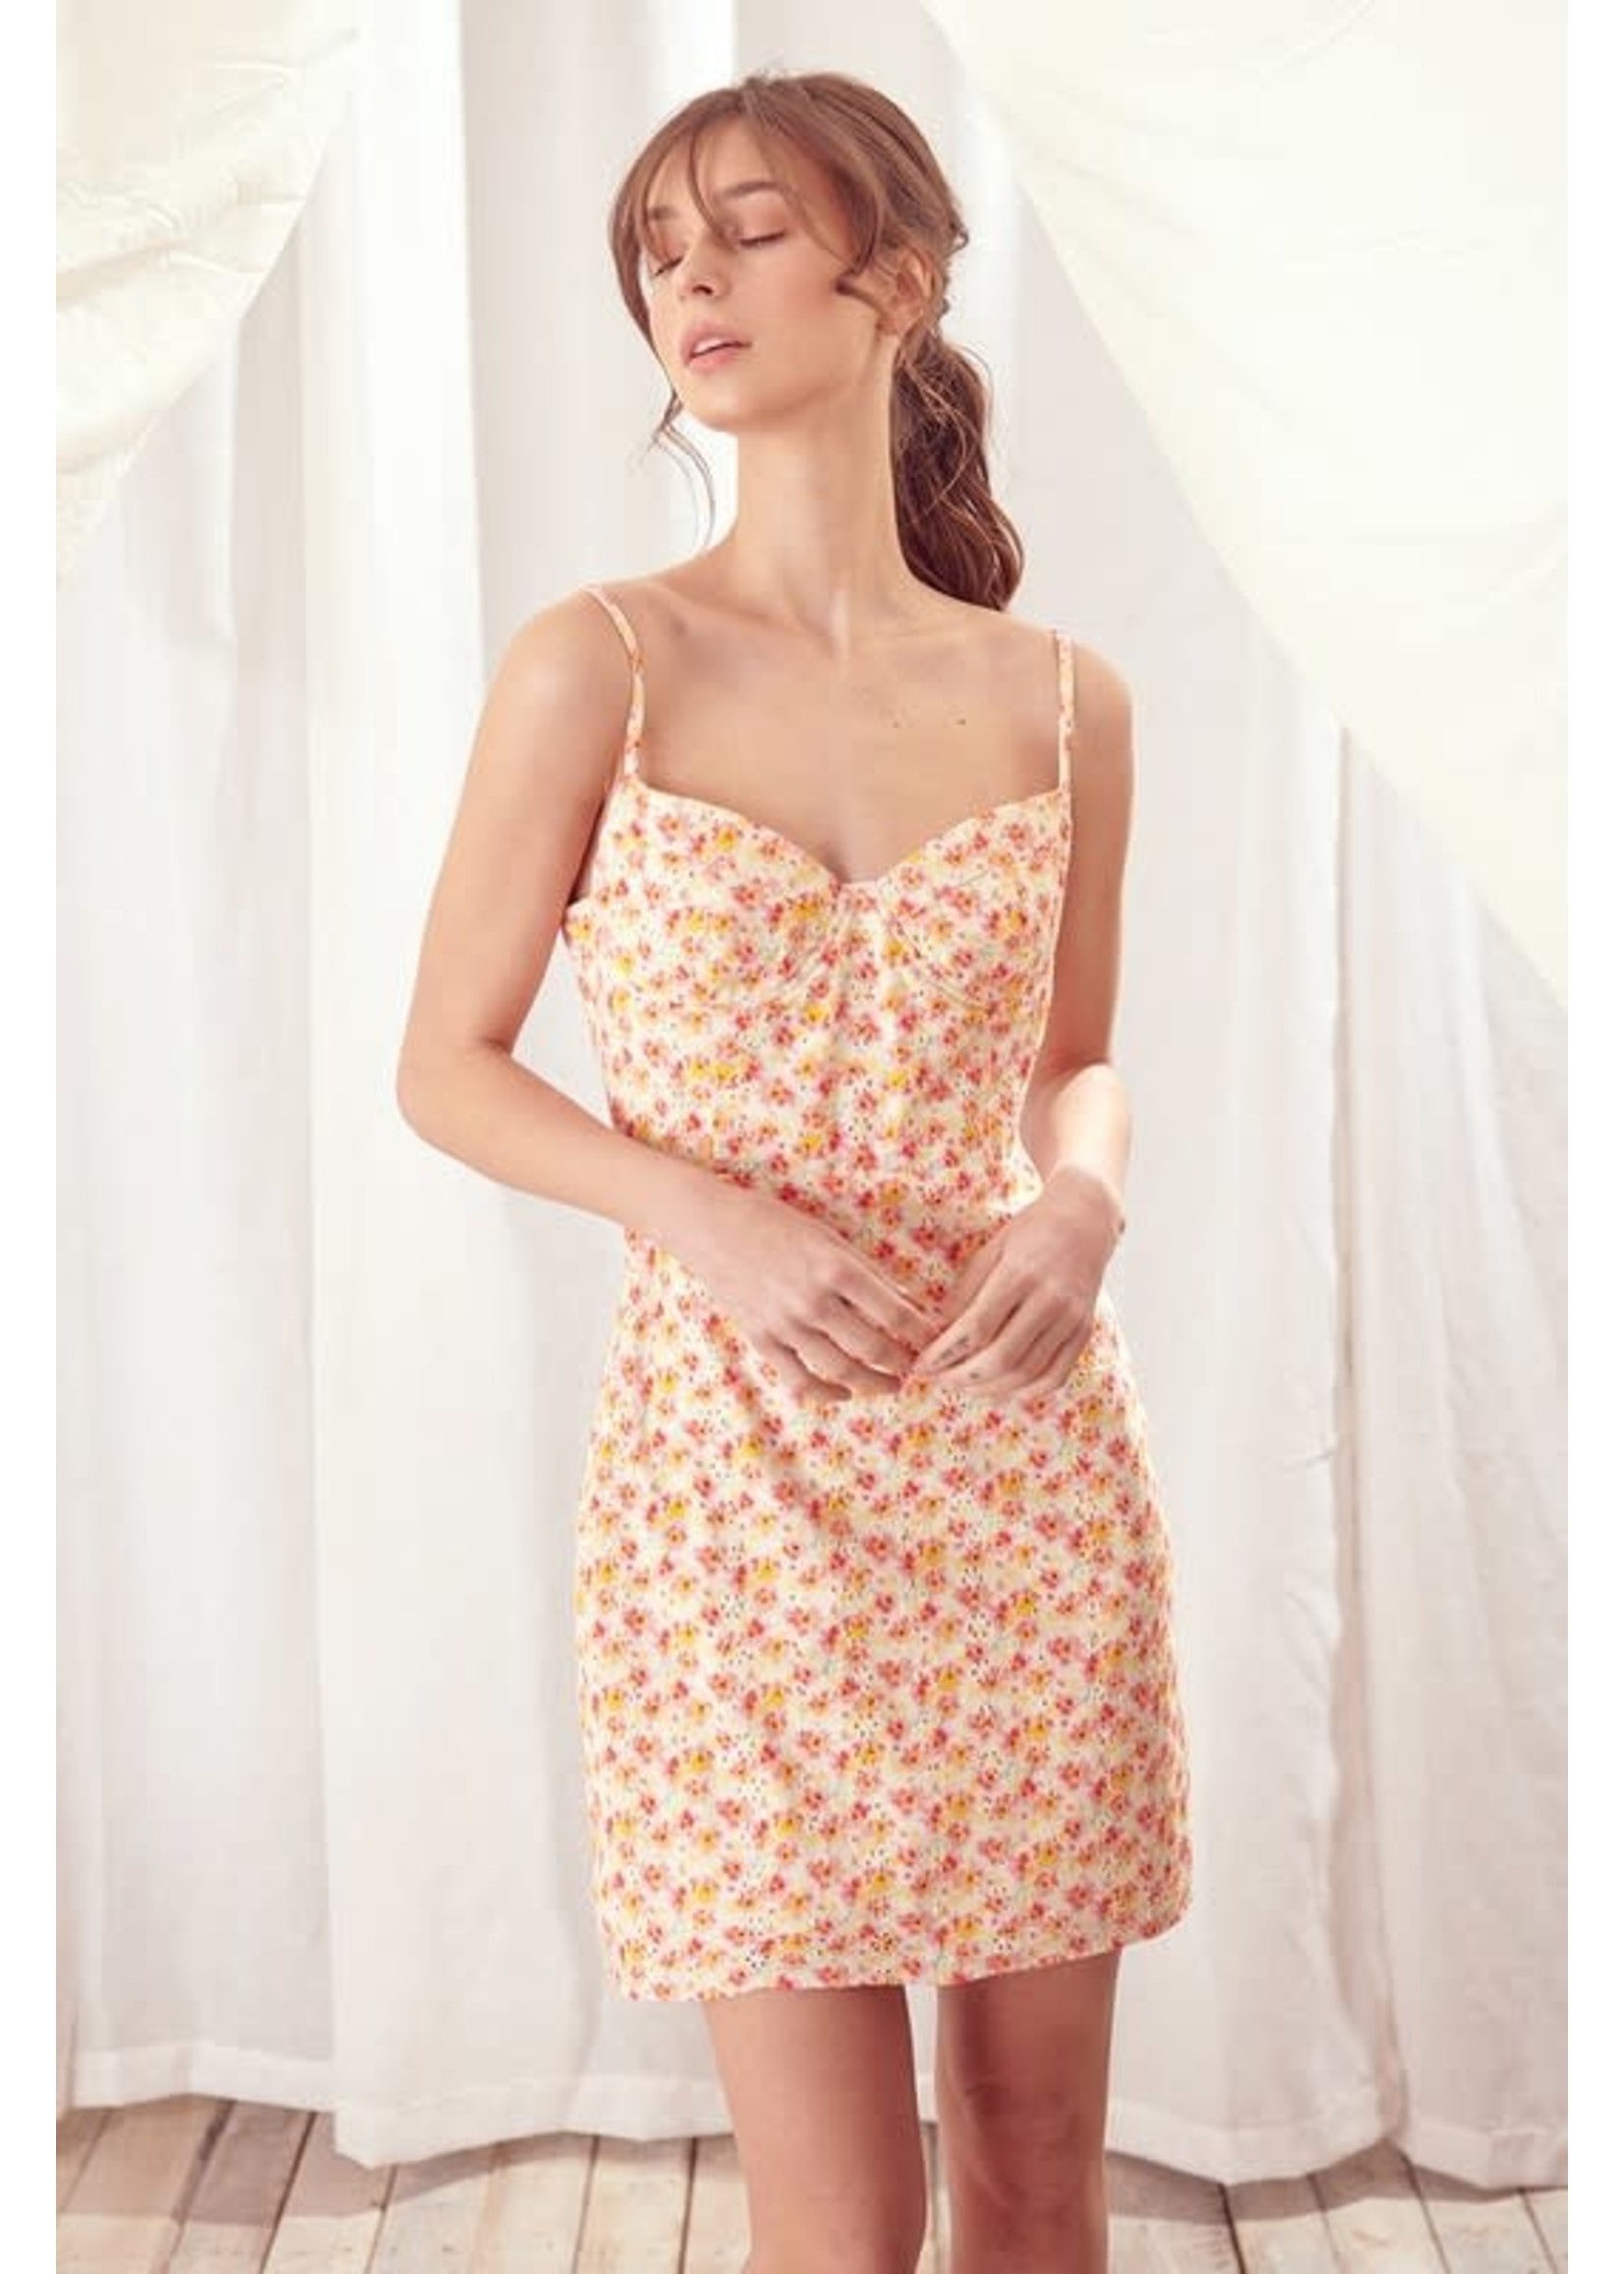 Storia Floral and Eyelet Print Mini Dress - SD1484A